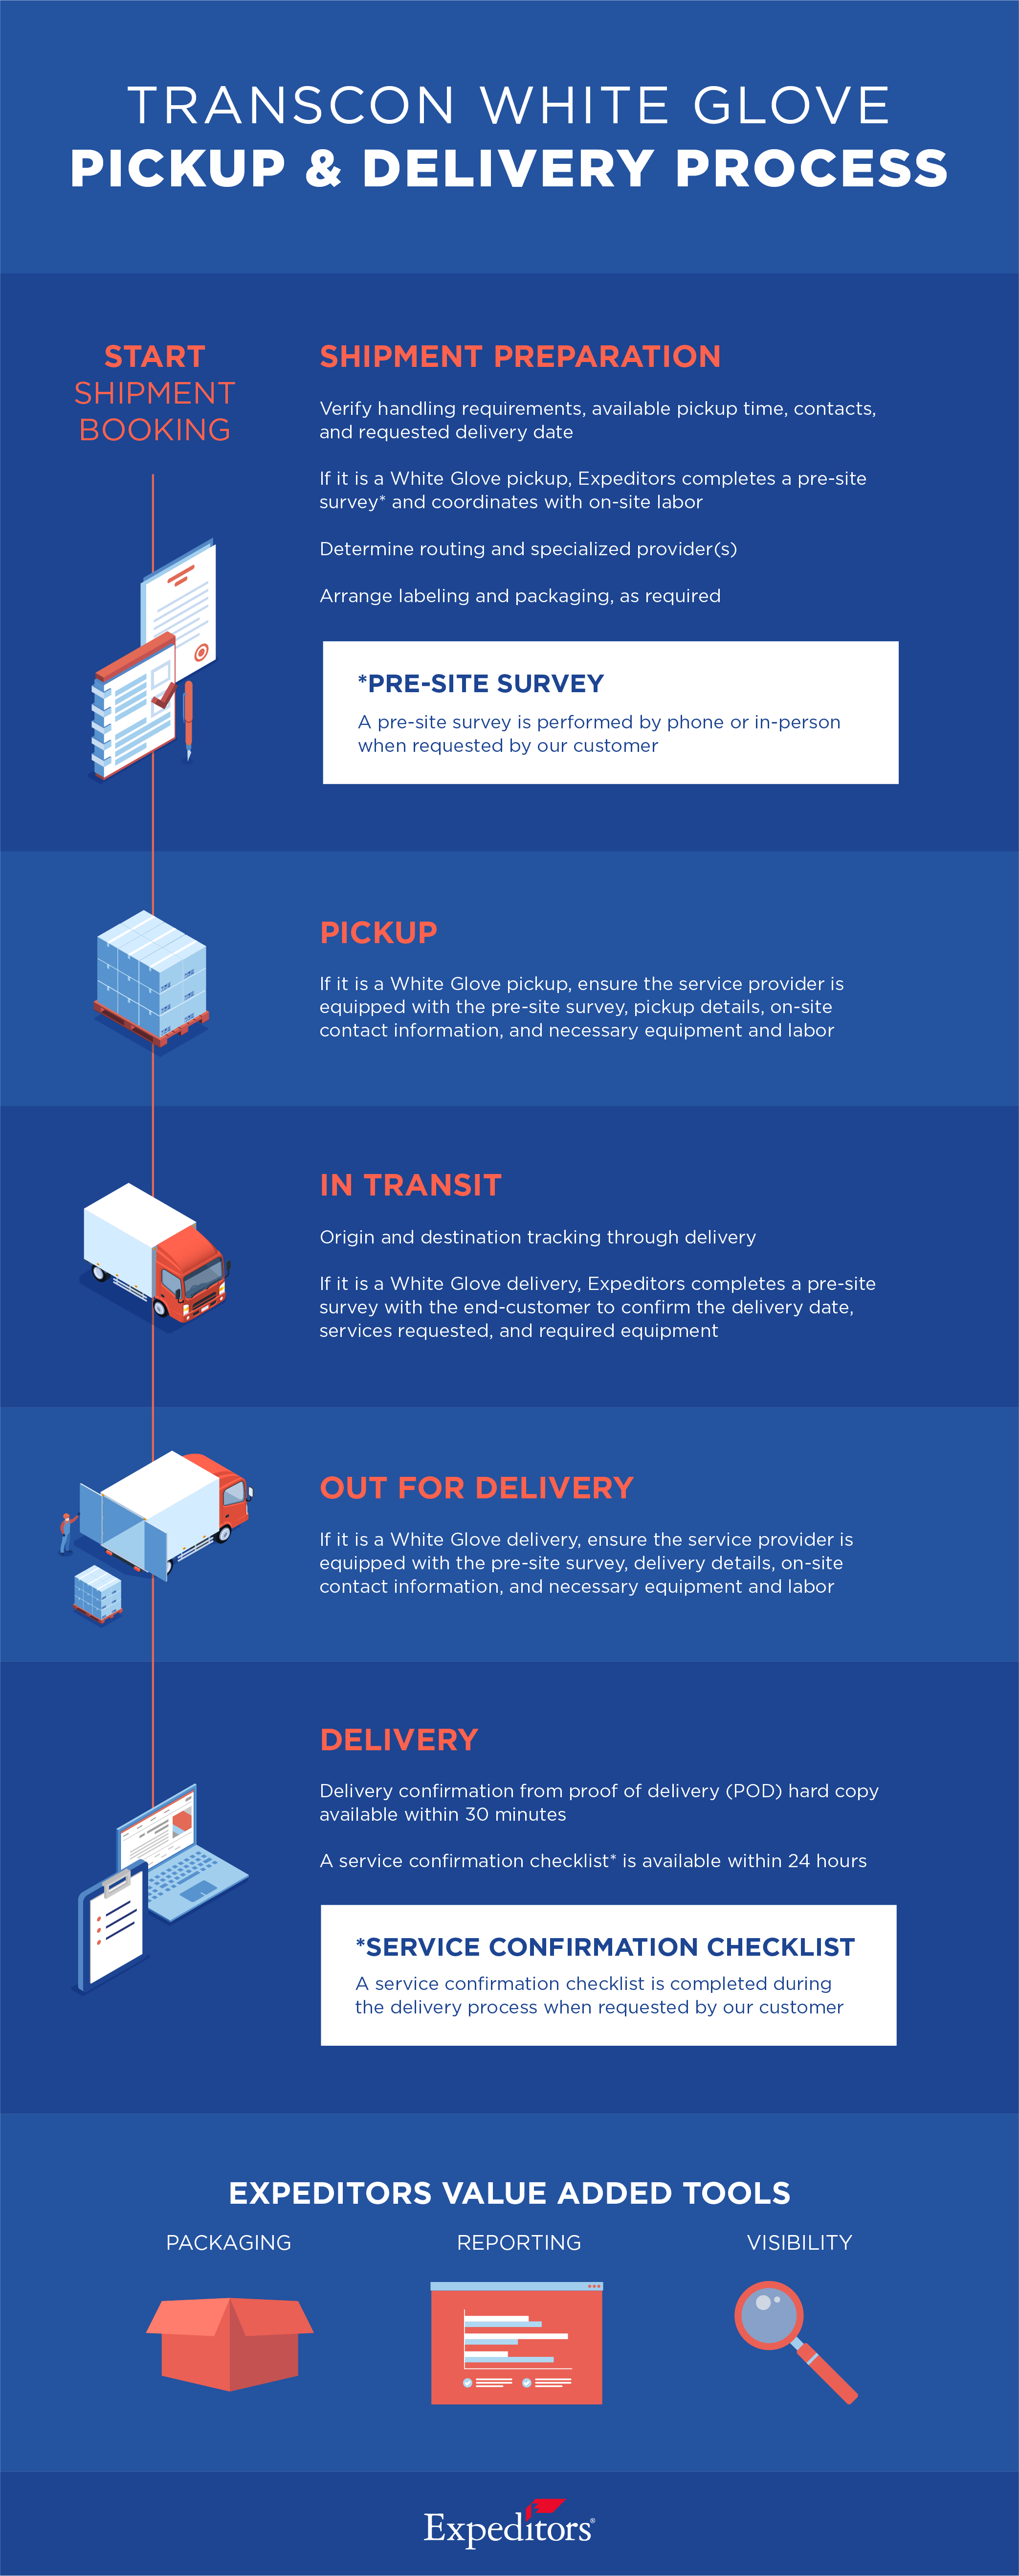 Transcon White Glove Infographic_Pickup & Delivery_Infographic